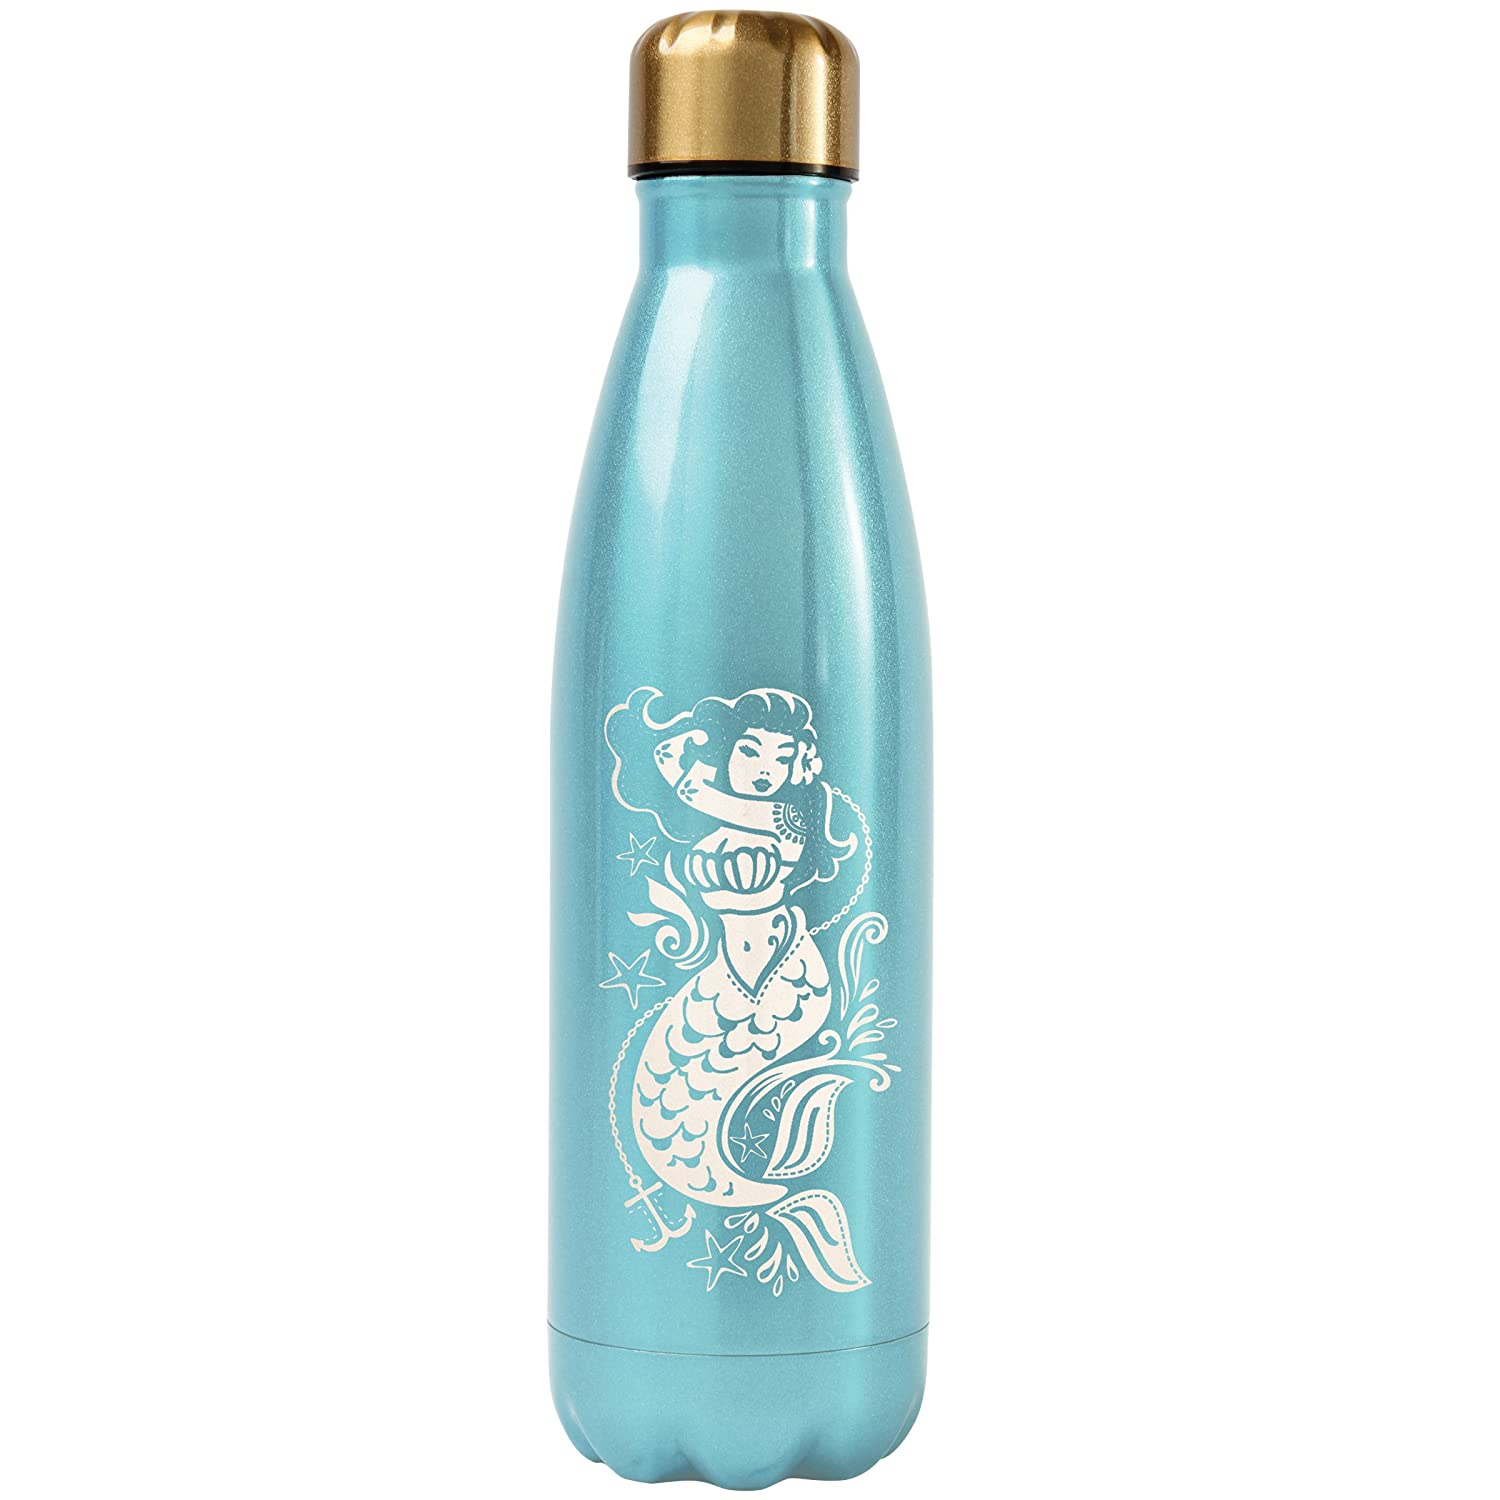 Coral Karma Gifts Mermaid Stainless Steel Water Bottle